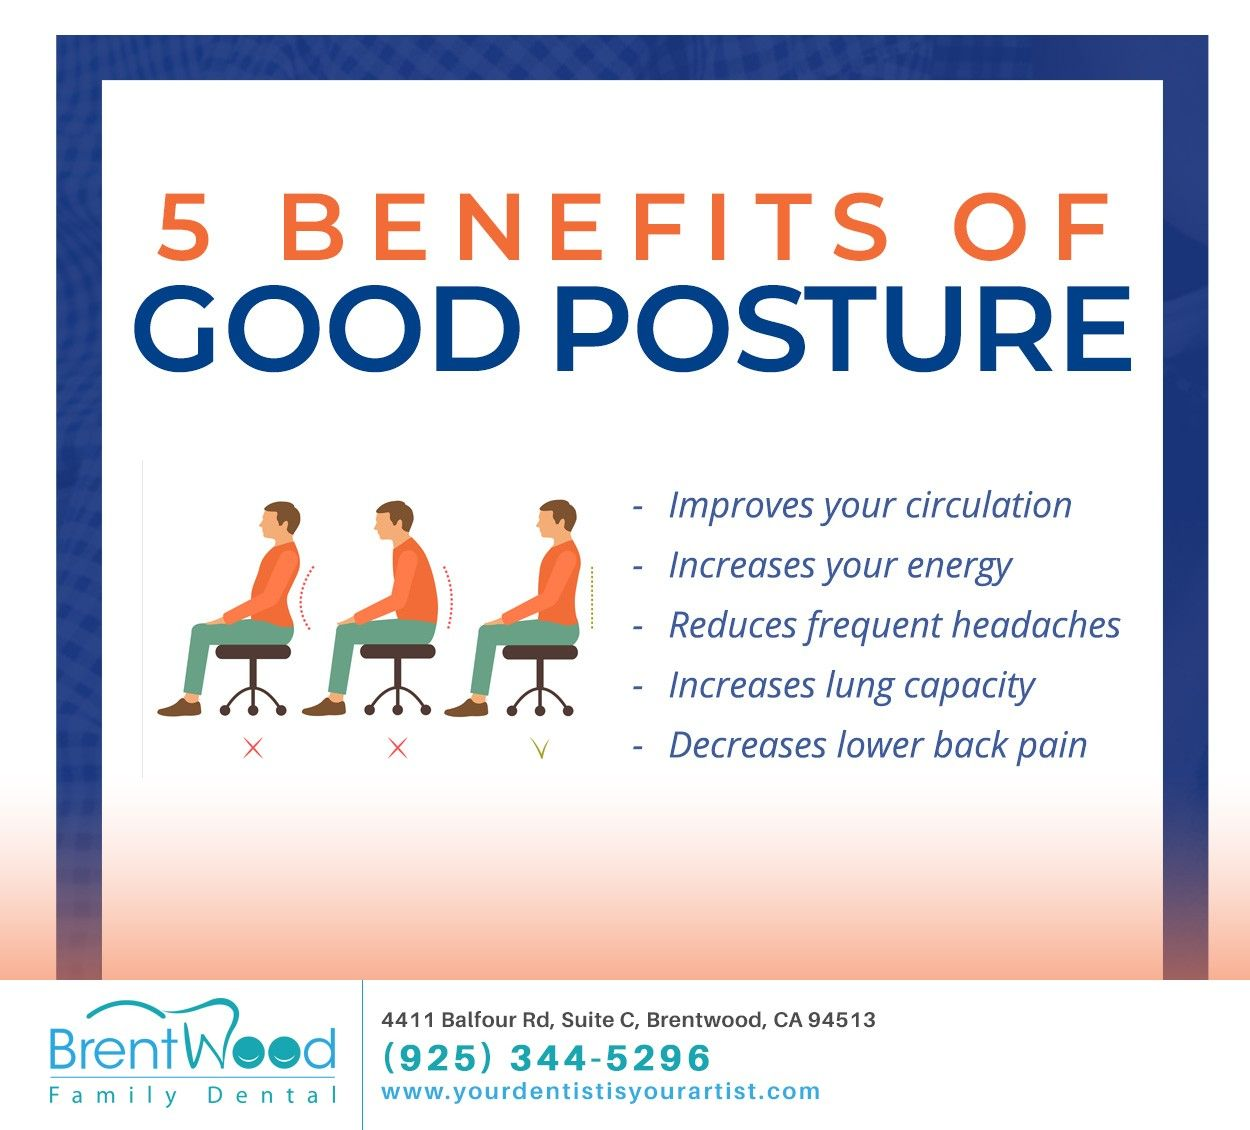 Did you know that by making a simple, pro-active effort to maintain good posture, you can help reduce the frequency of headaches without taking medication? #neckpainrelief #wellness #lifestylechanges #brentwood #CA #brentwoodfamilydental #weightmanagement #weightlosstransformations #nourishyourbody #nourishtoflourish #curvystyle #strongfirst #focusonyourself #gymtips #newmonthnewgoals #tryingnewthings #keepmotivating #staytruetoyourself #diettips #fitnesstraining #lifestylechanges #tryingmybest